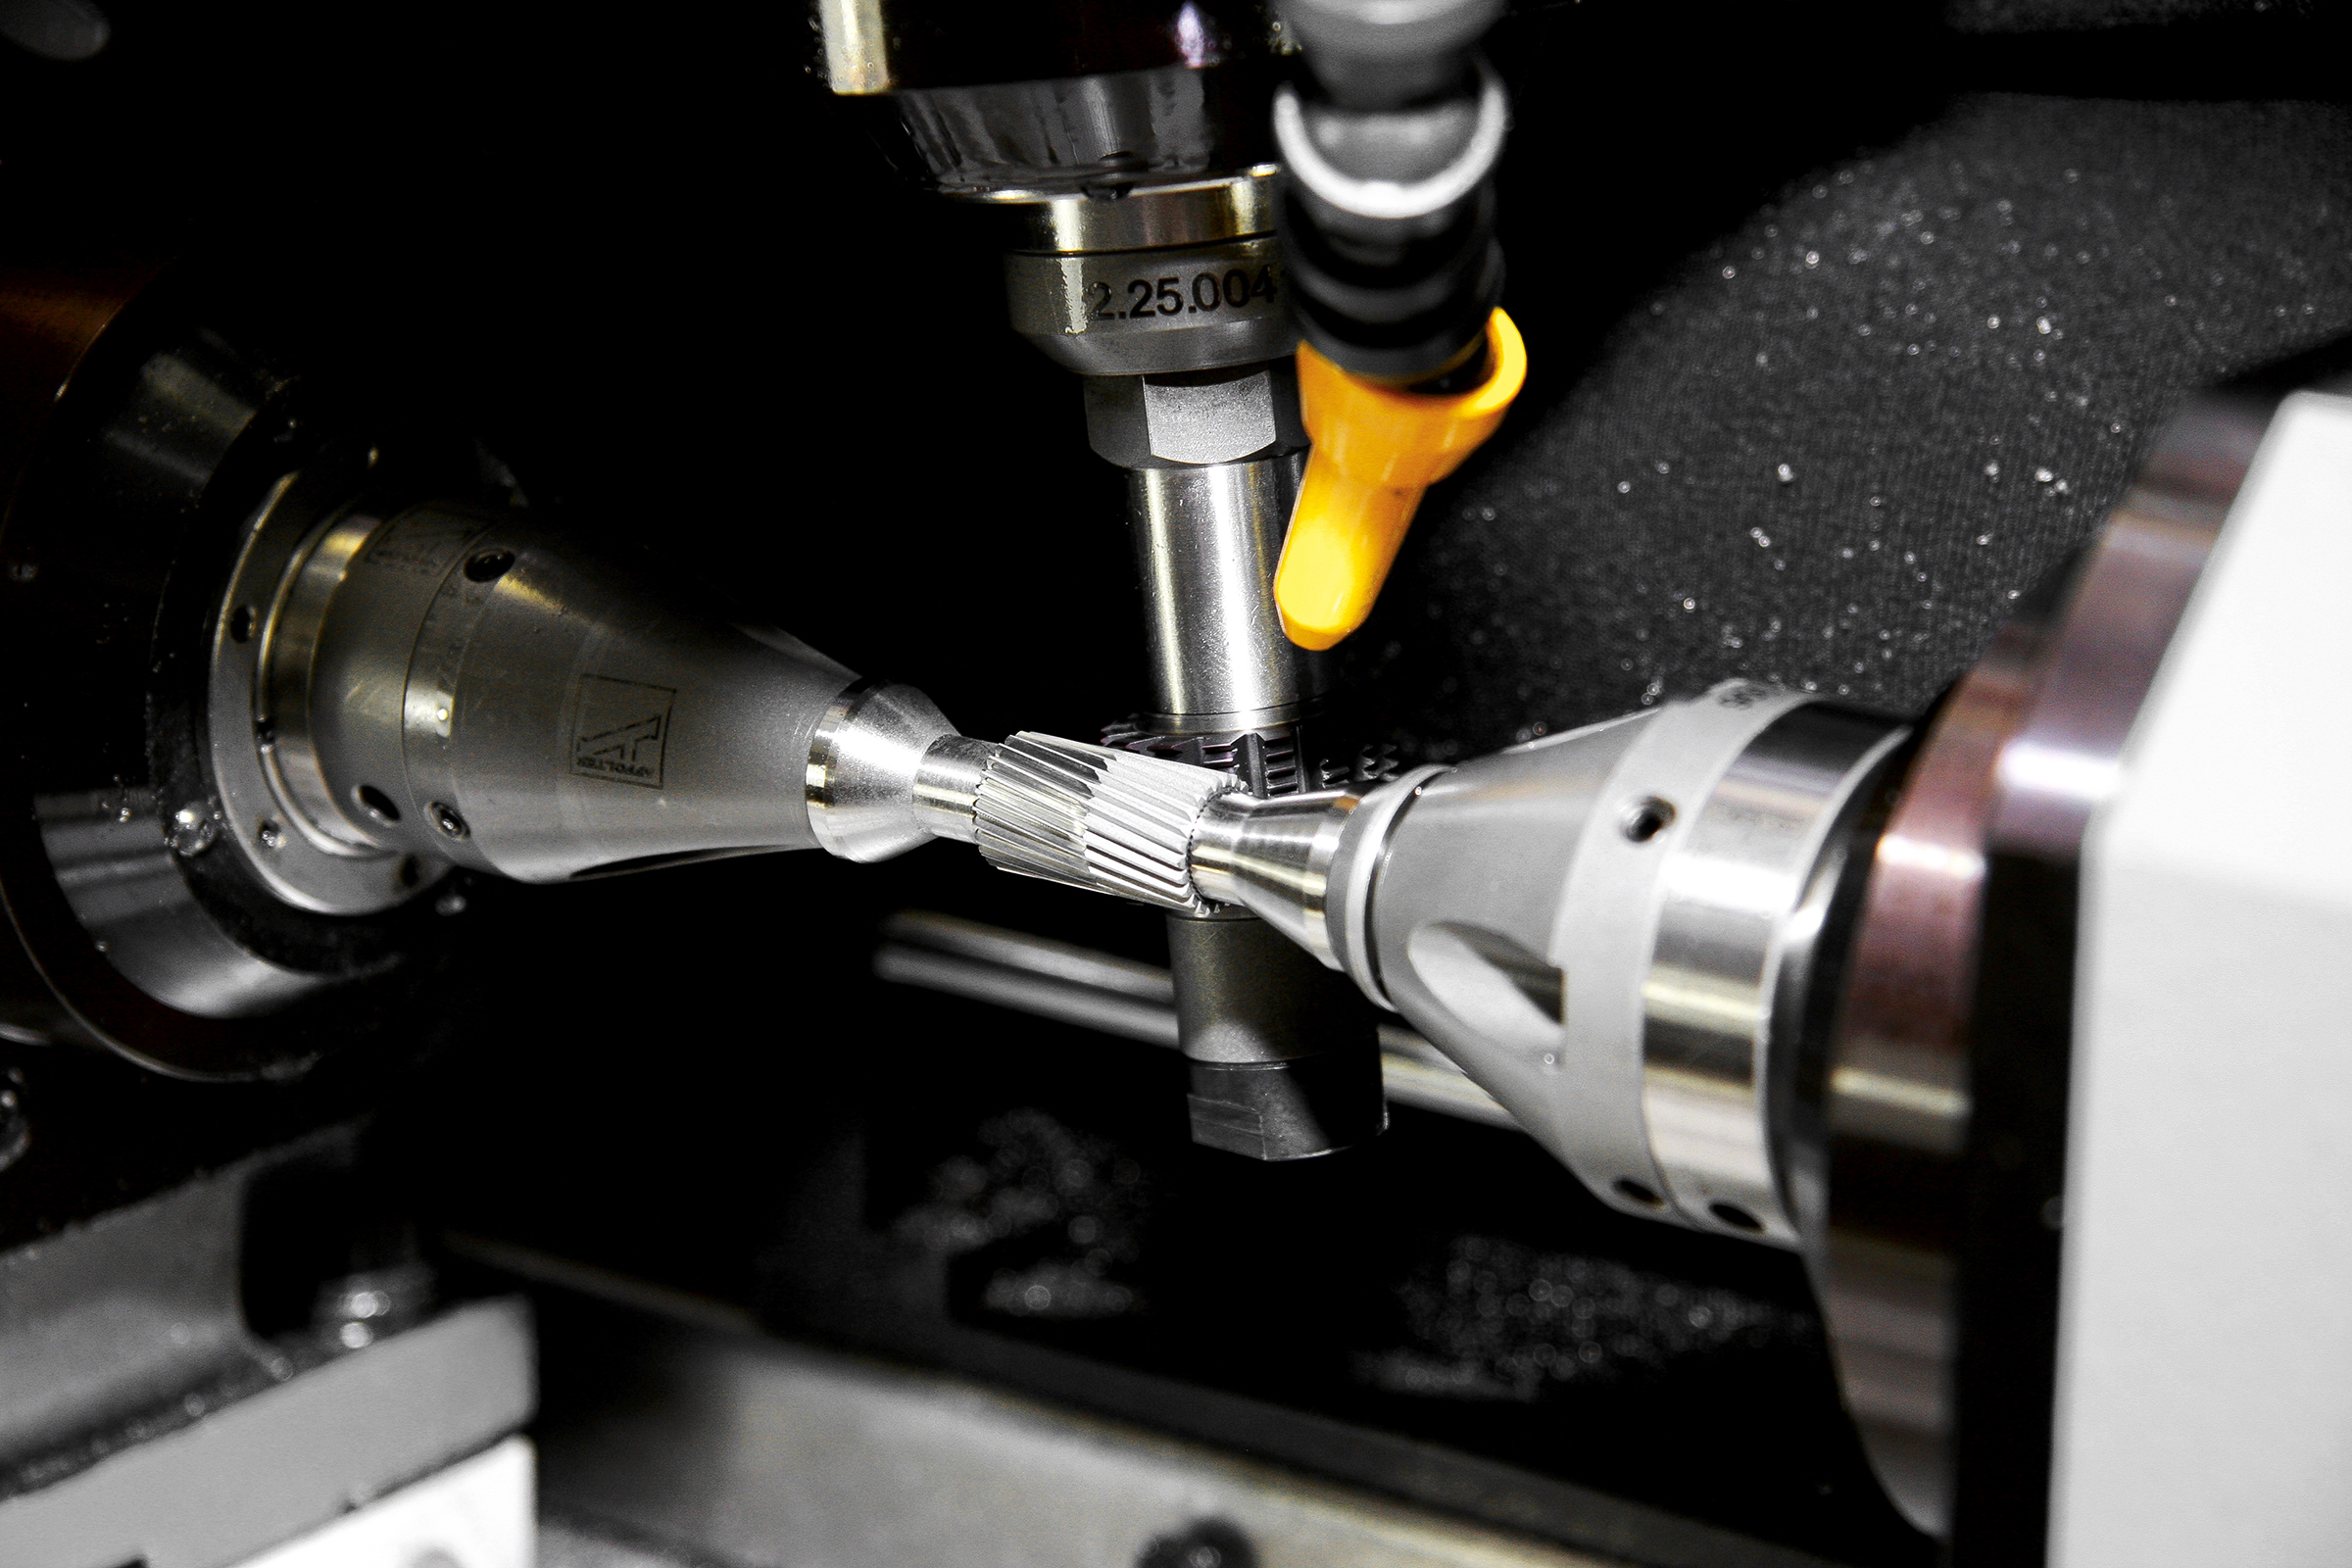 Gear cutting helical gears with skiving process